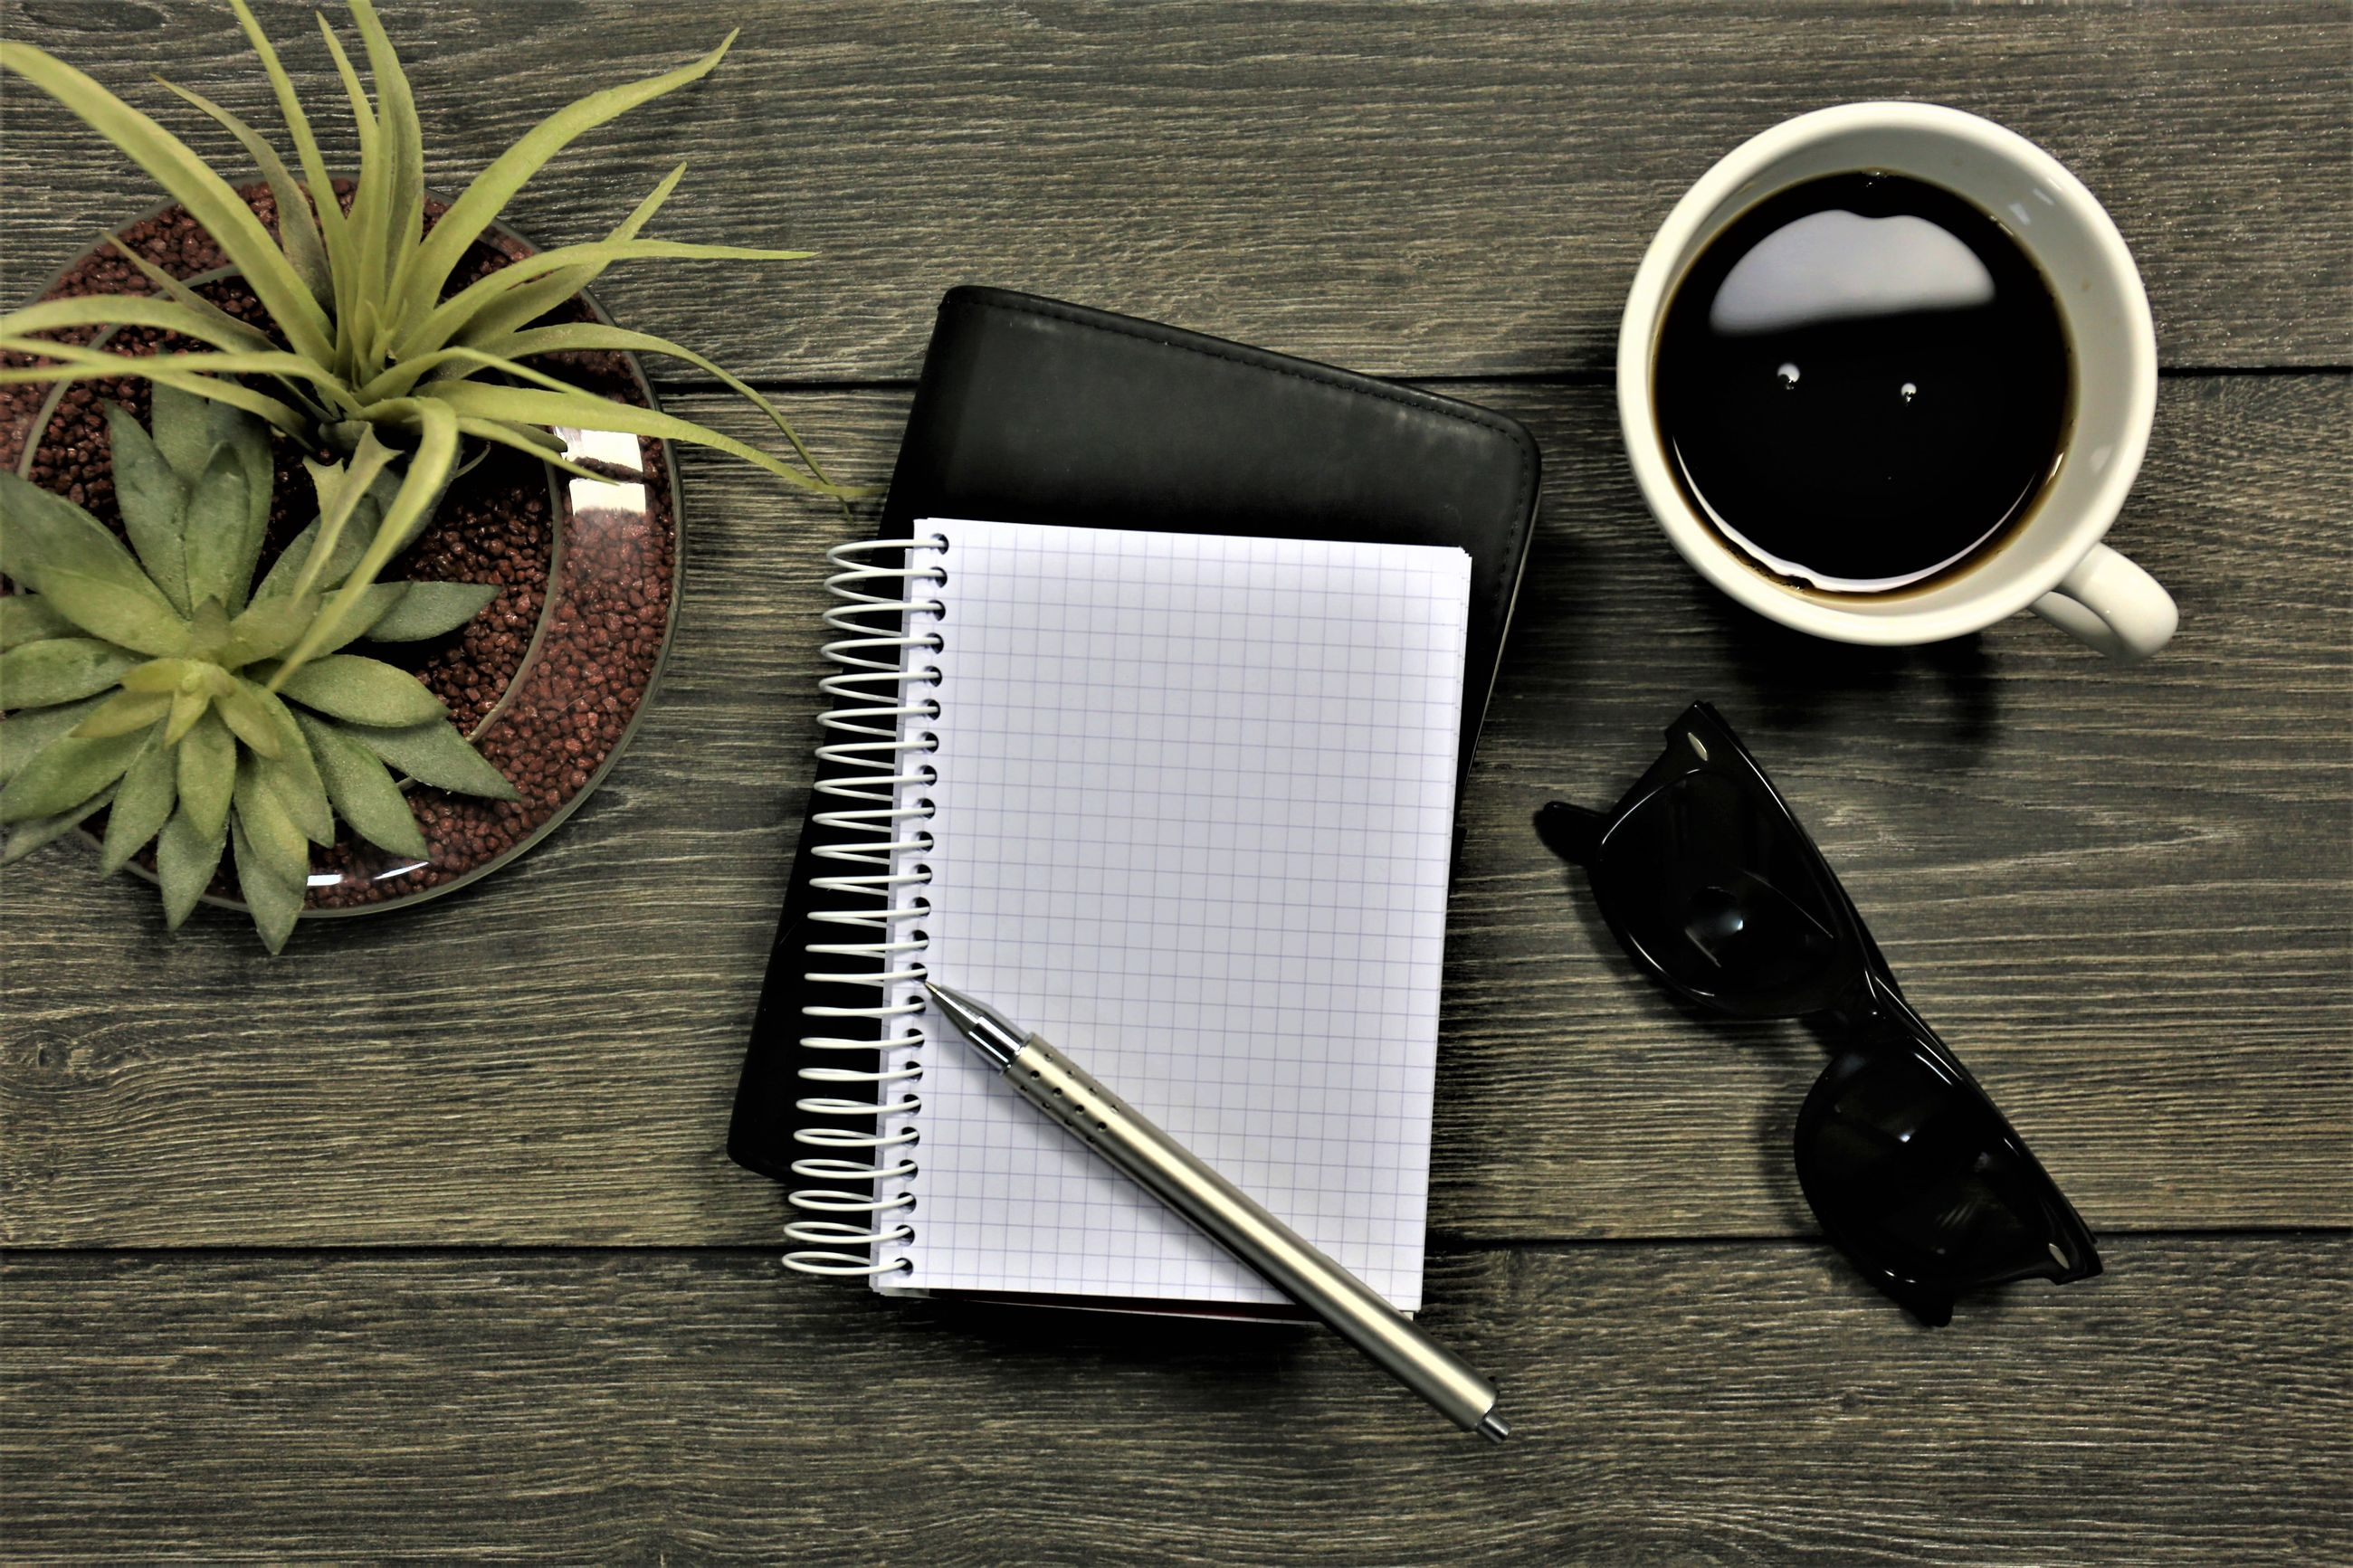 Directly above shot of coffee by note pad and sunglasses on table